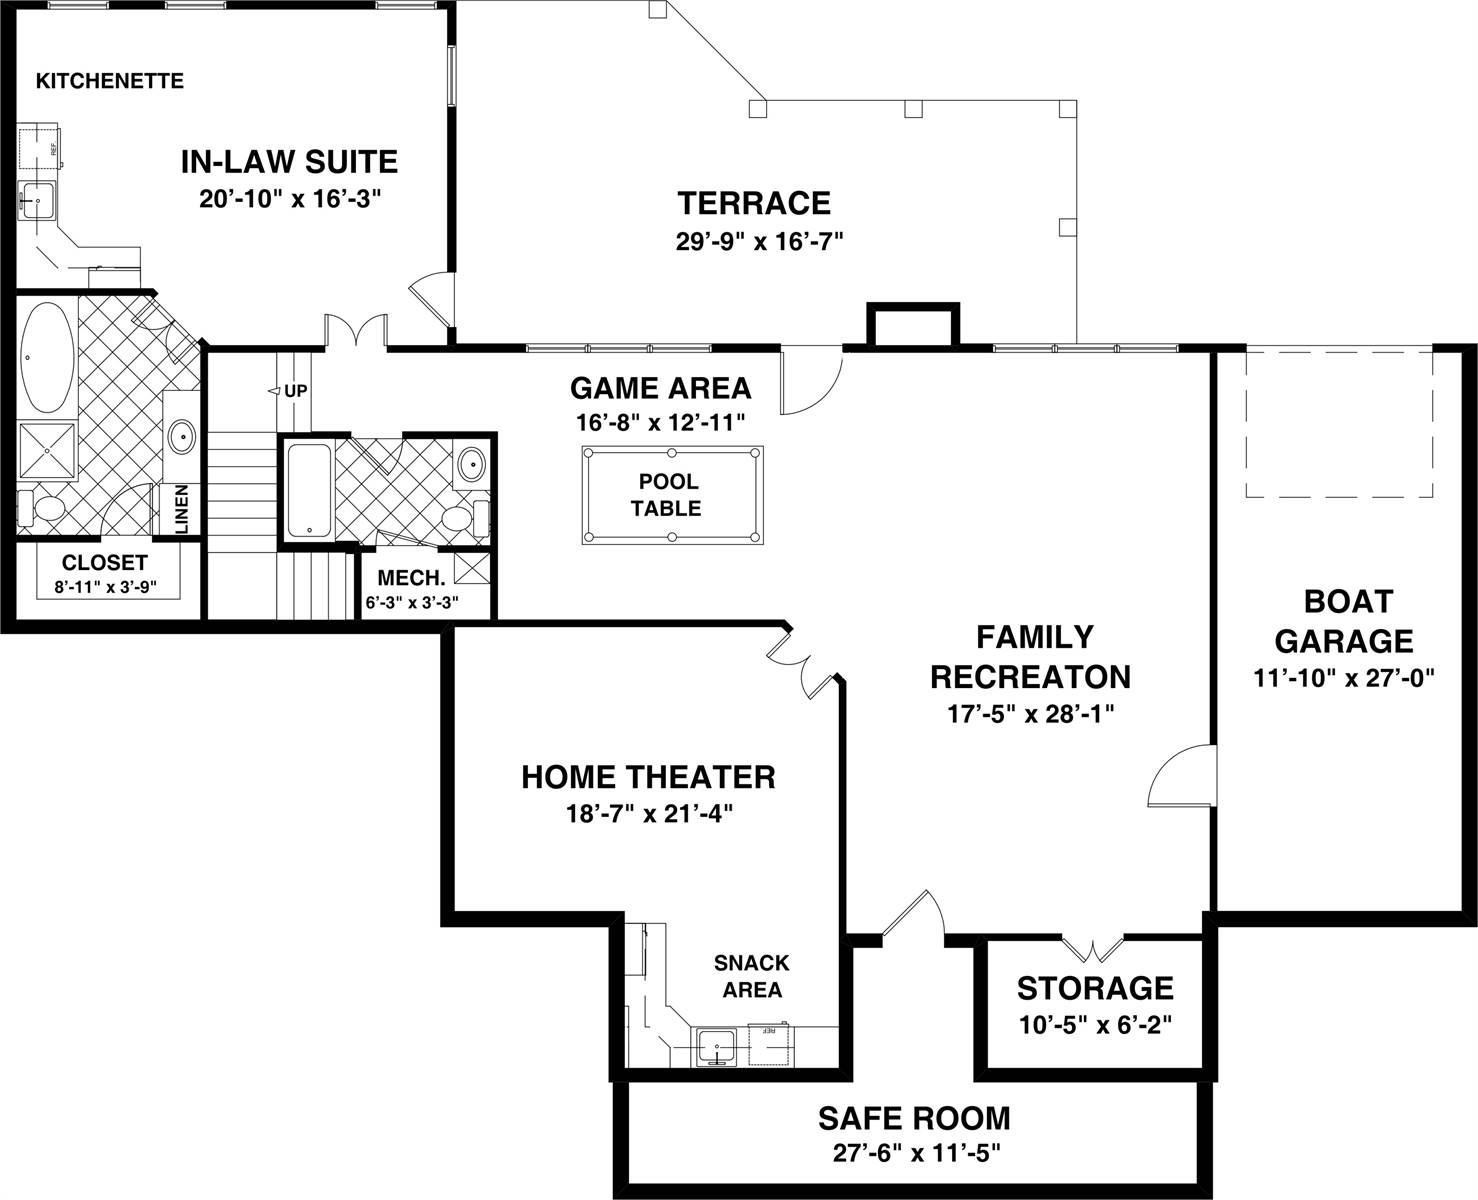 Basement Floor Plan image of Featured House Plan: BHG - 8314